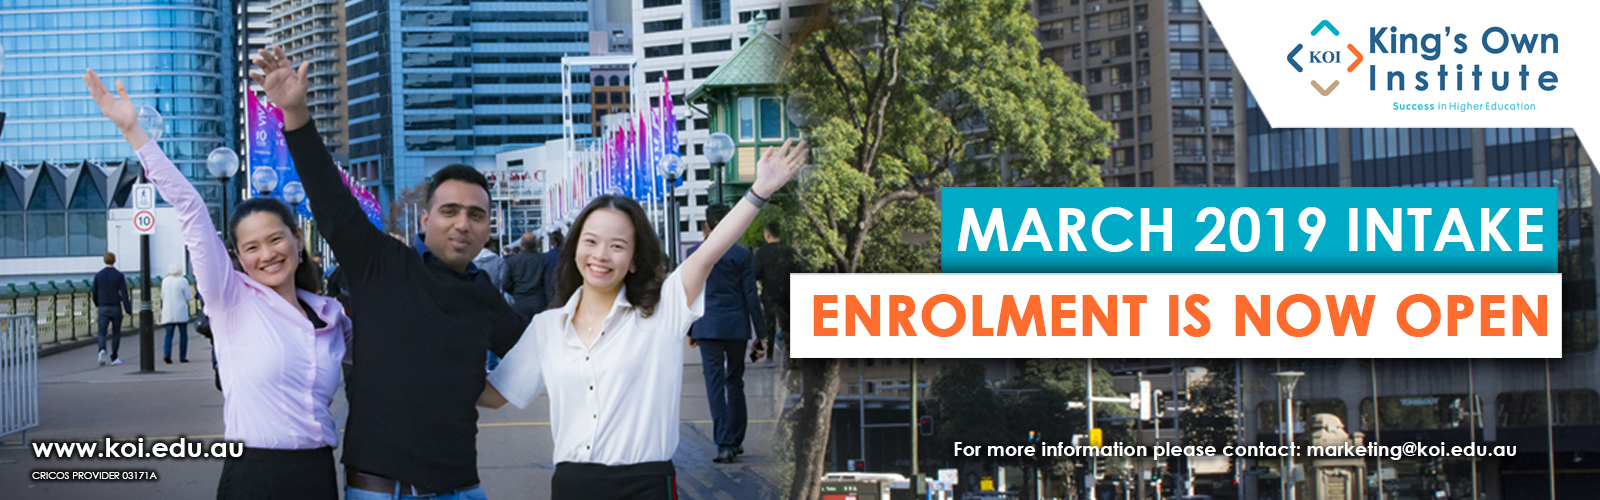 Enrolment-Facebook-Cover-2-post-1600x500-px